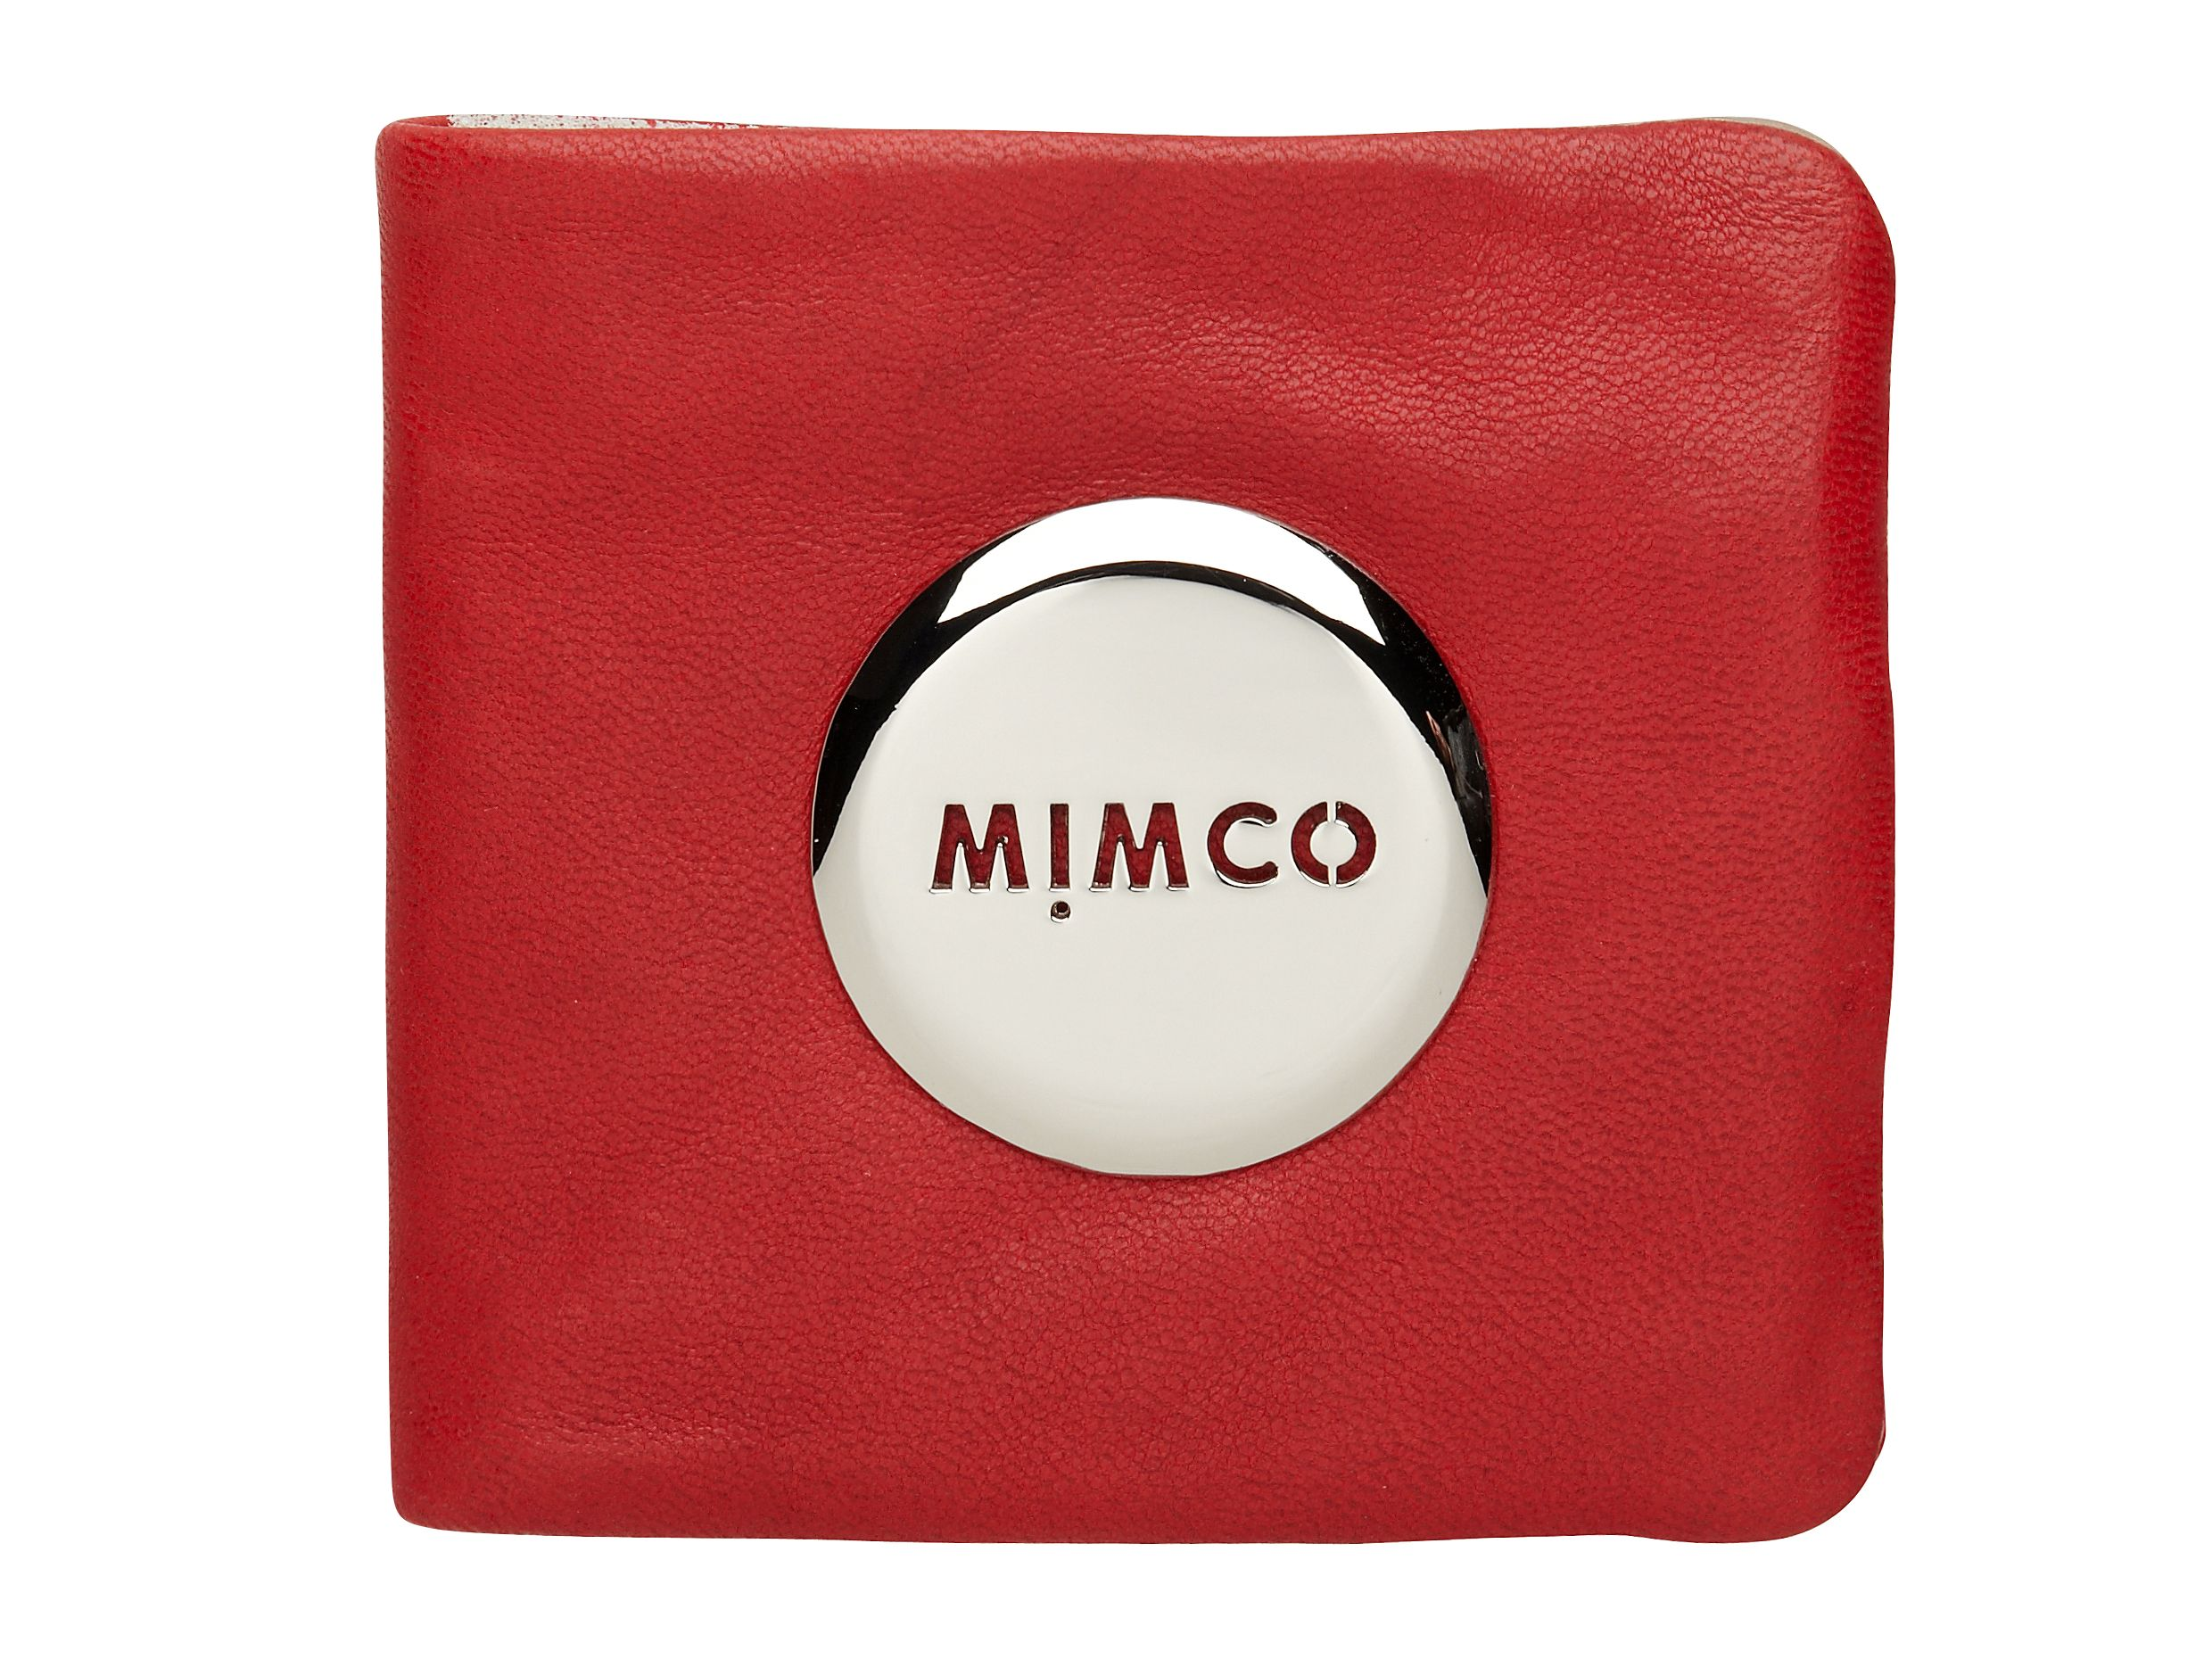 Mimco Petite mim wallet product image